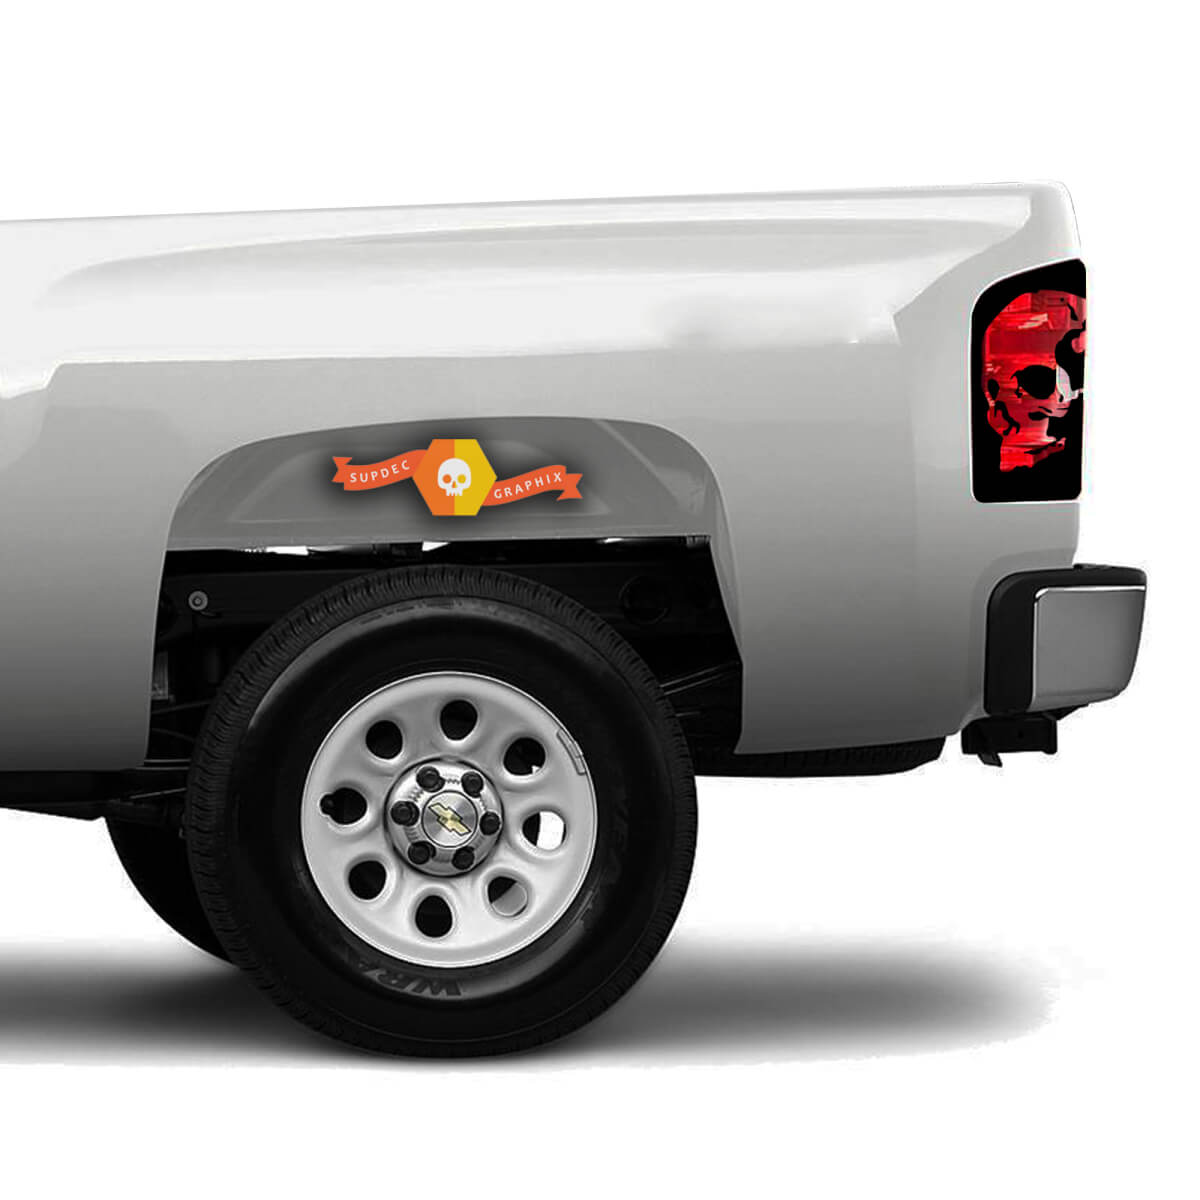 Chevrolet Silverado Truck 1500/2500/3500 Skull Brake Light Graphic decals stickers fits models 2008-2013